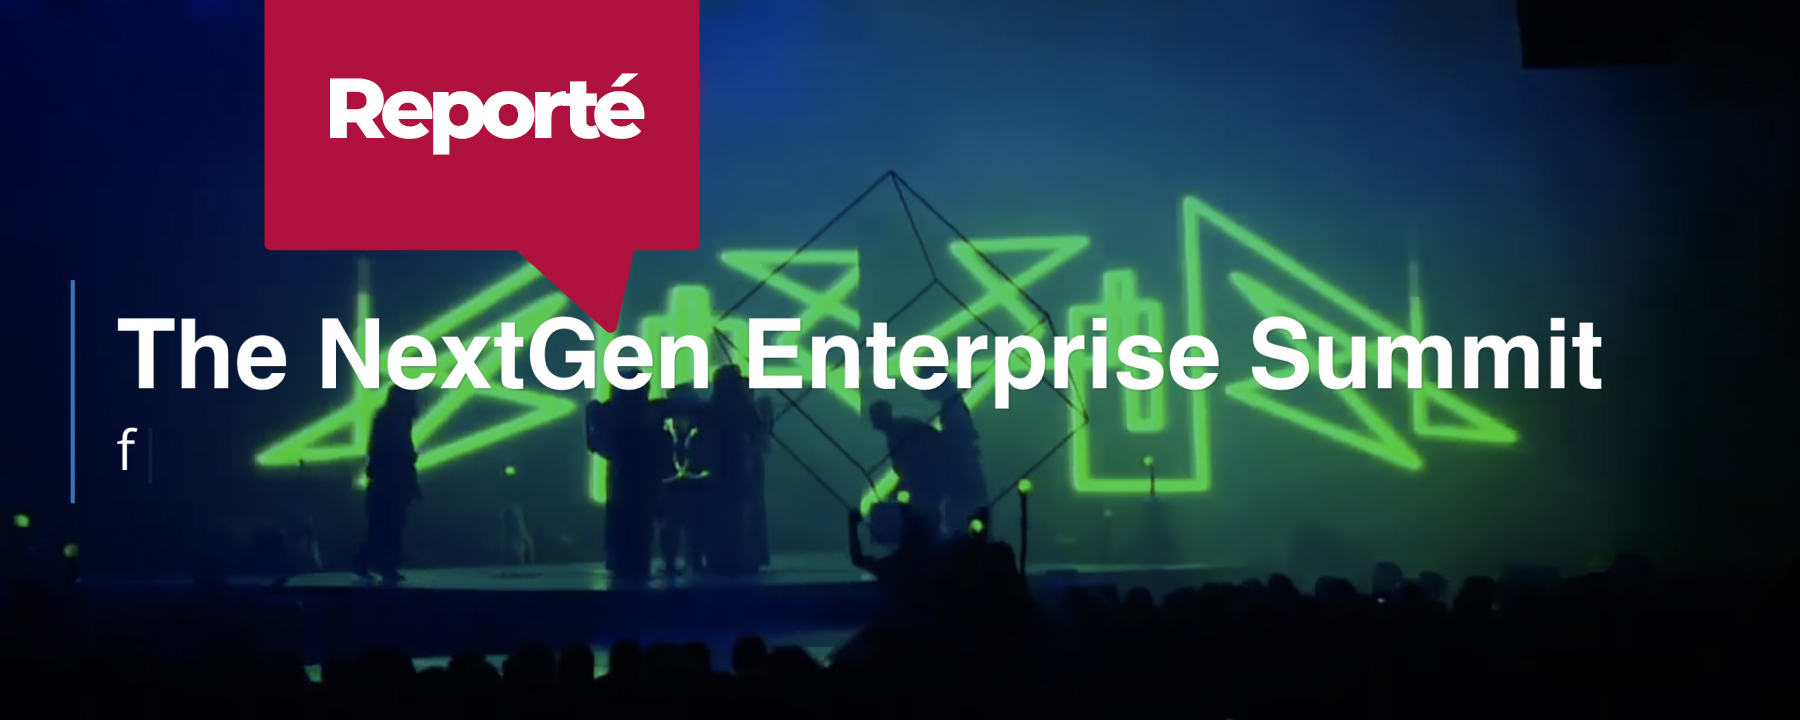 The NextGen Enterprise summit 2020, un événement organisé par Purpose4Good